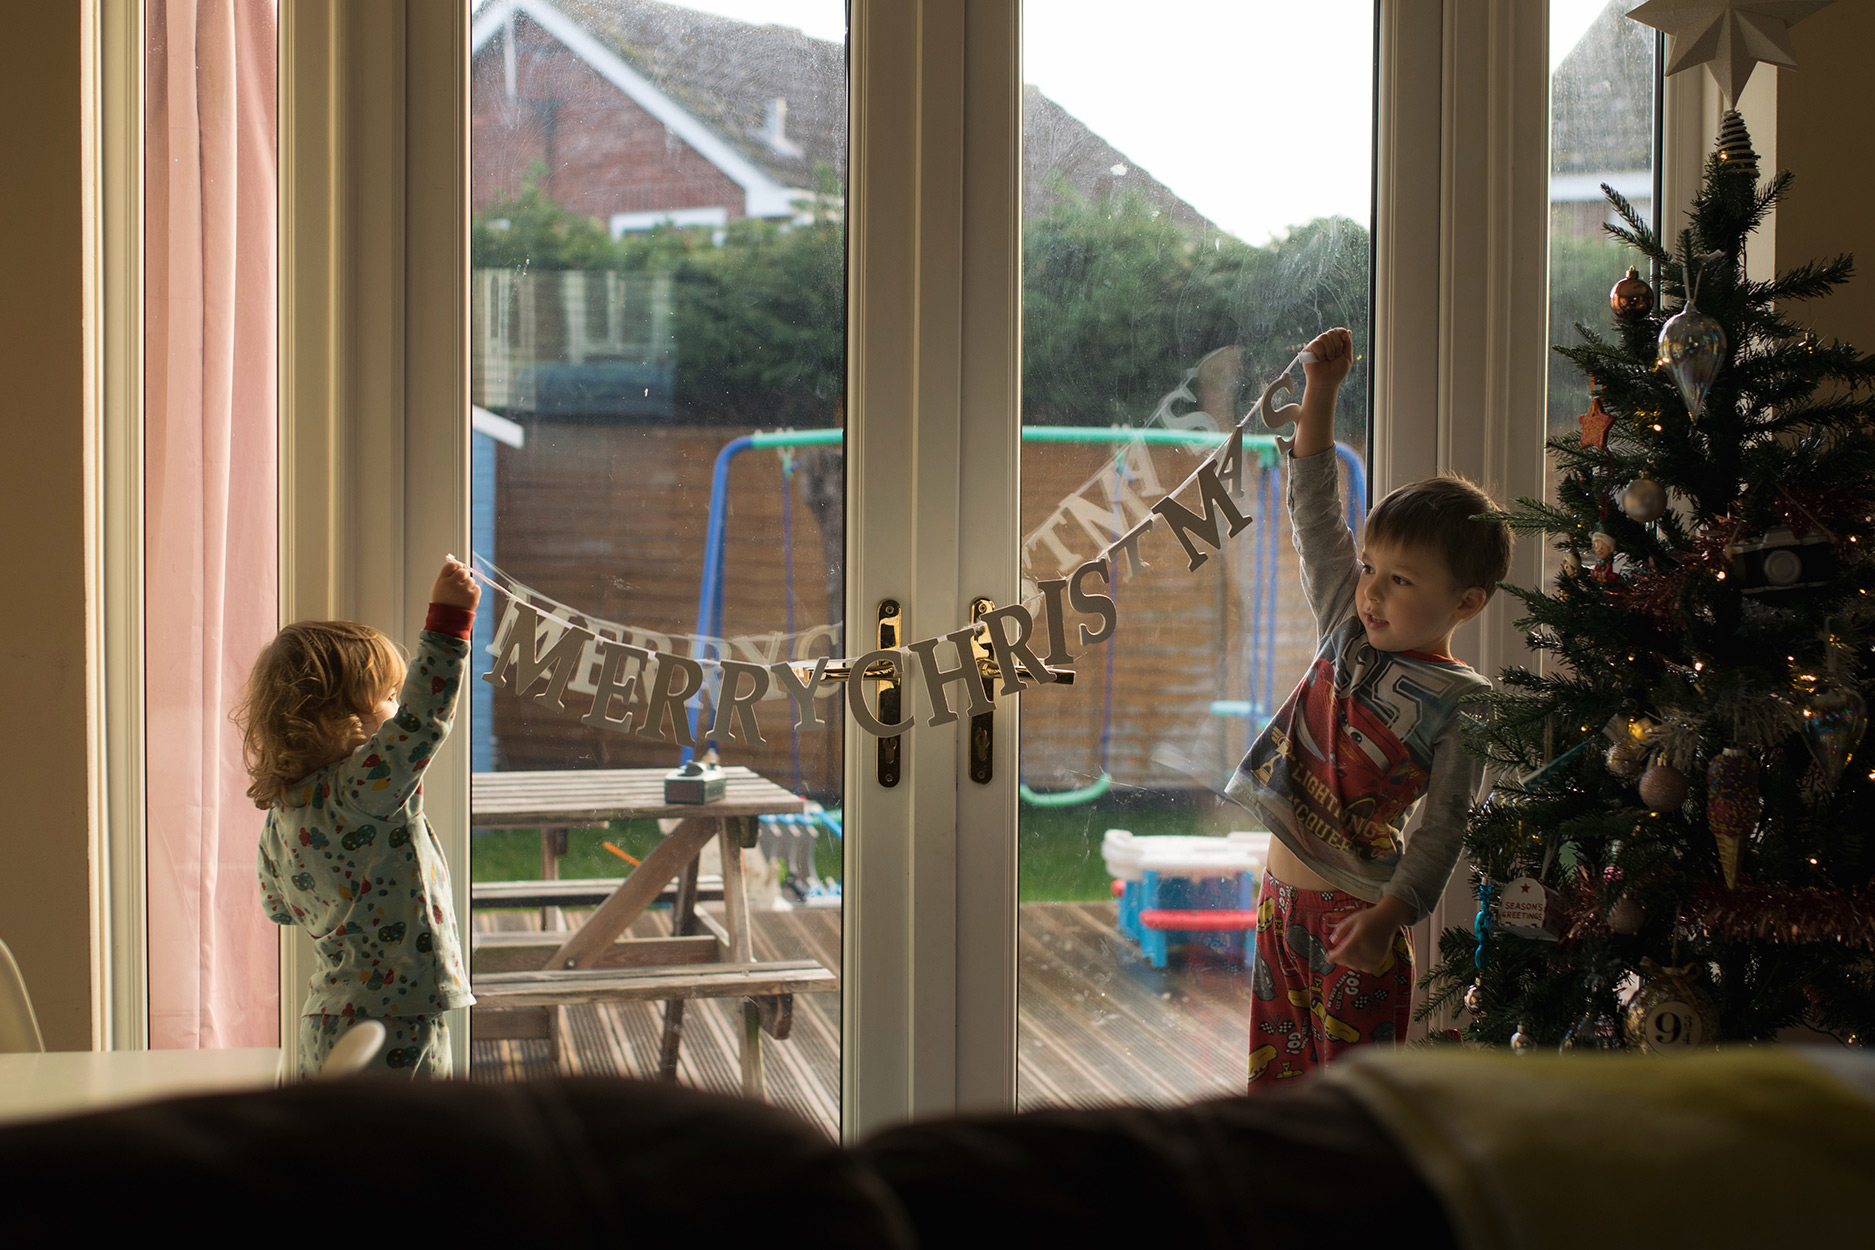 Two brothers wearing Little Green Radicals pyjamas holding up a Merry Christmas banner in living room, candid photography taken on Nikon D3300